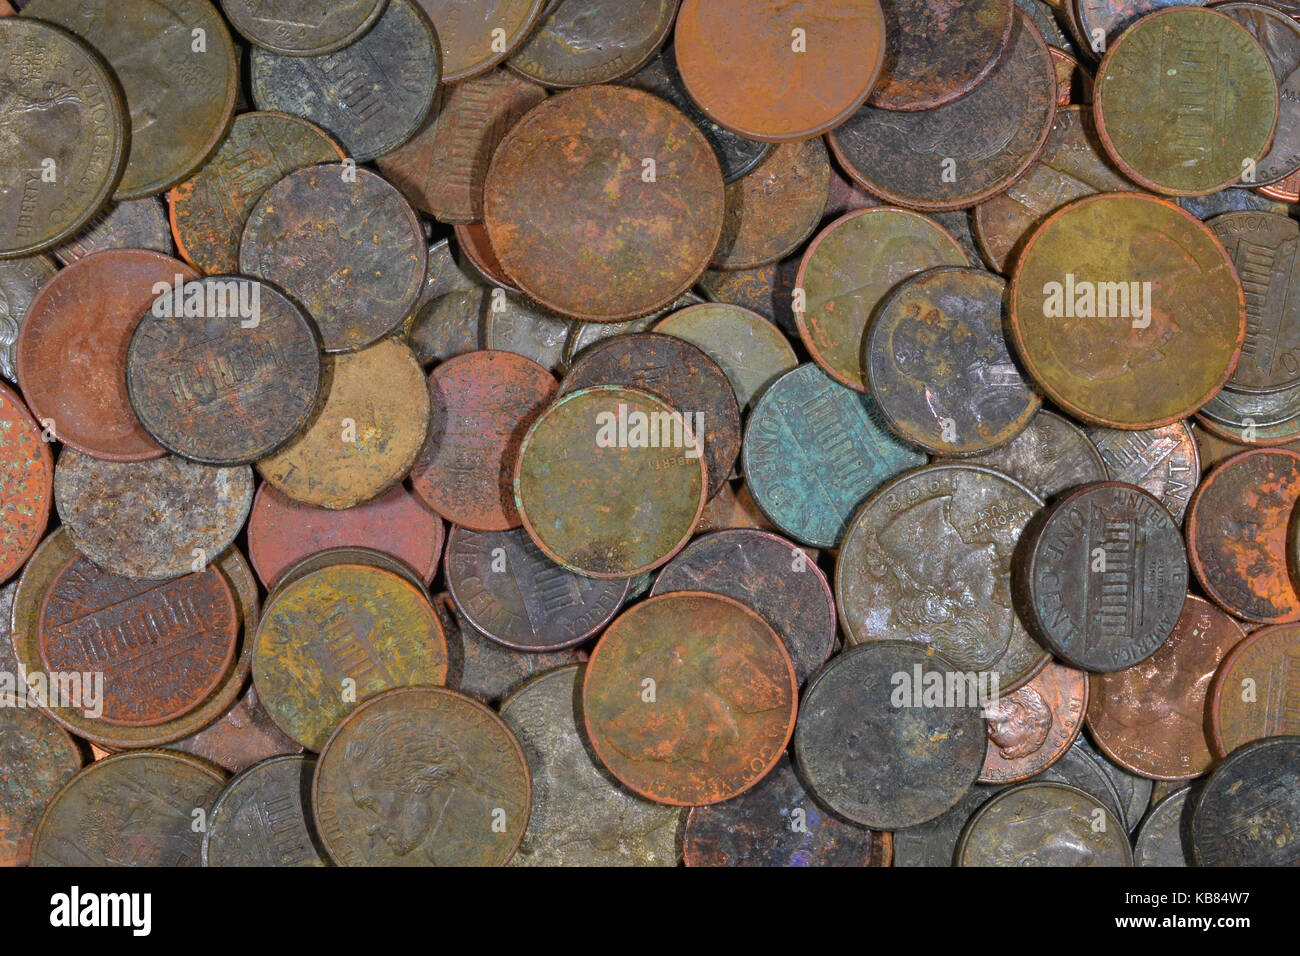 Assortment of dirty US coins found with a metal detector. - Stock Image